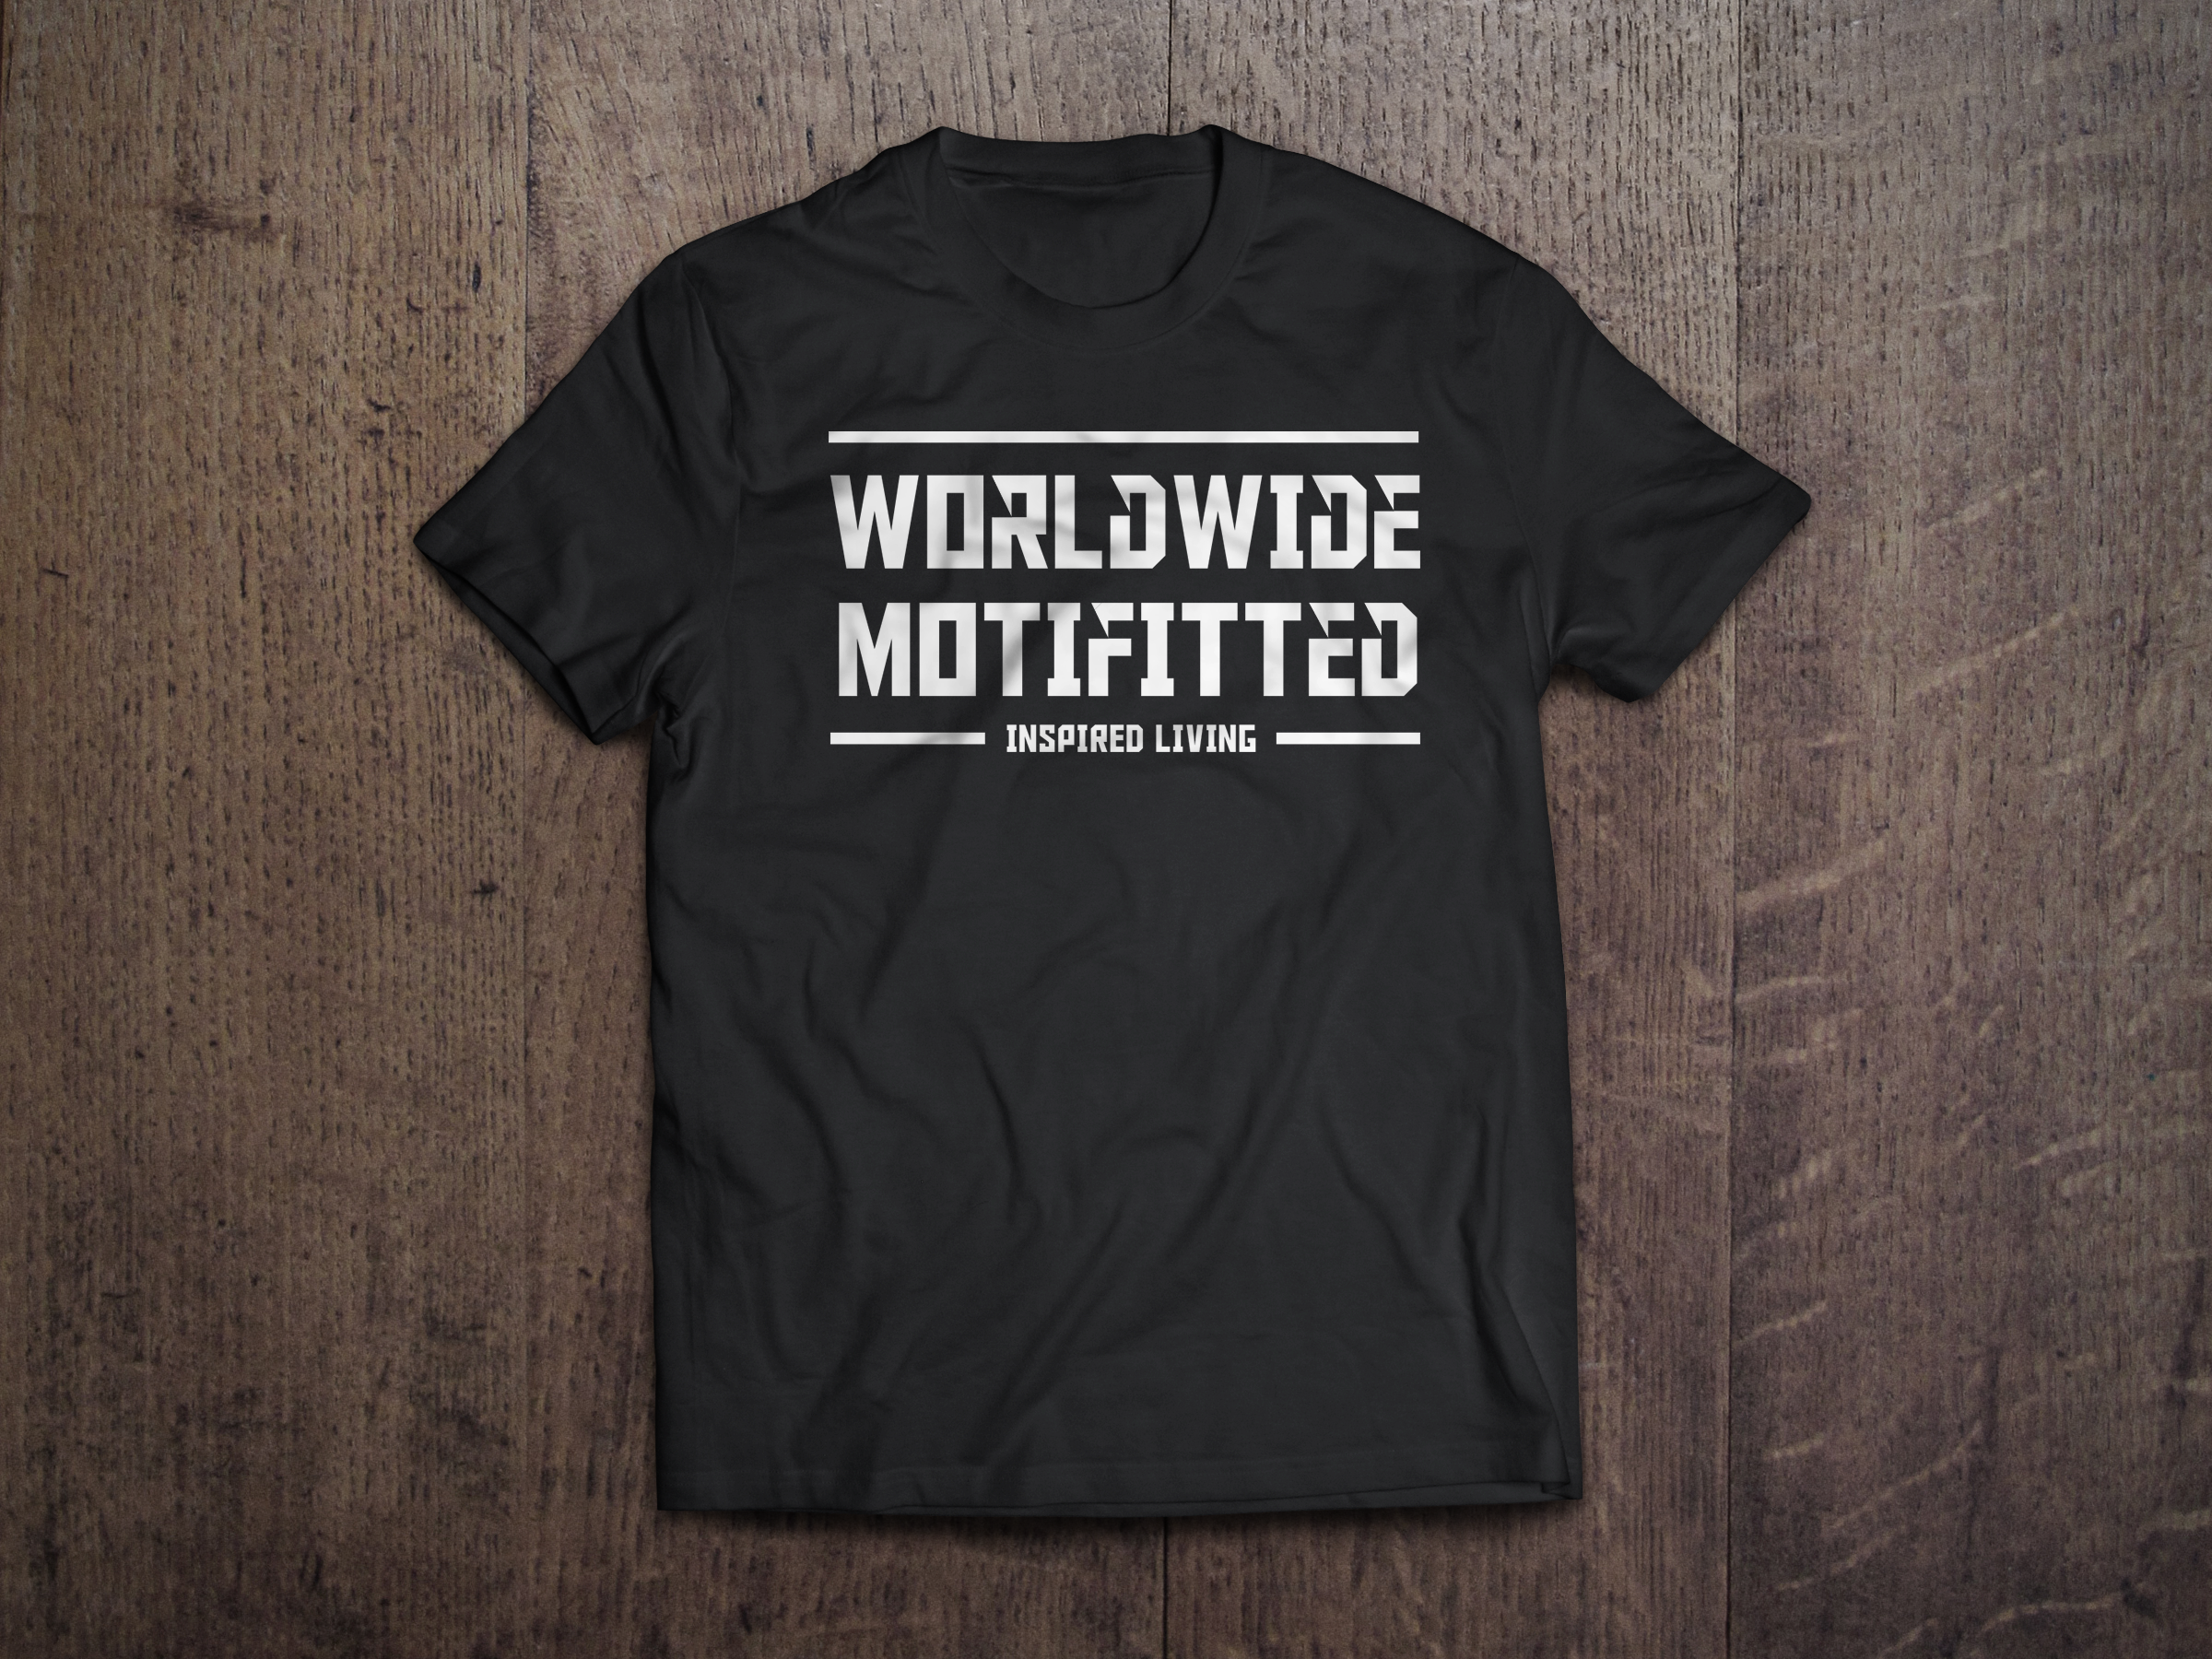 worldwide motifitted tshirt